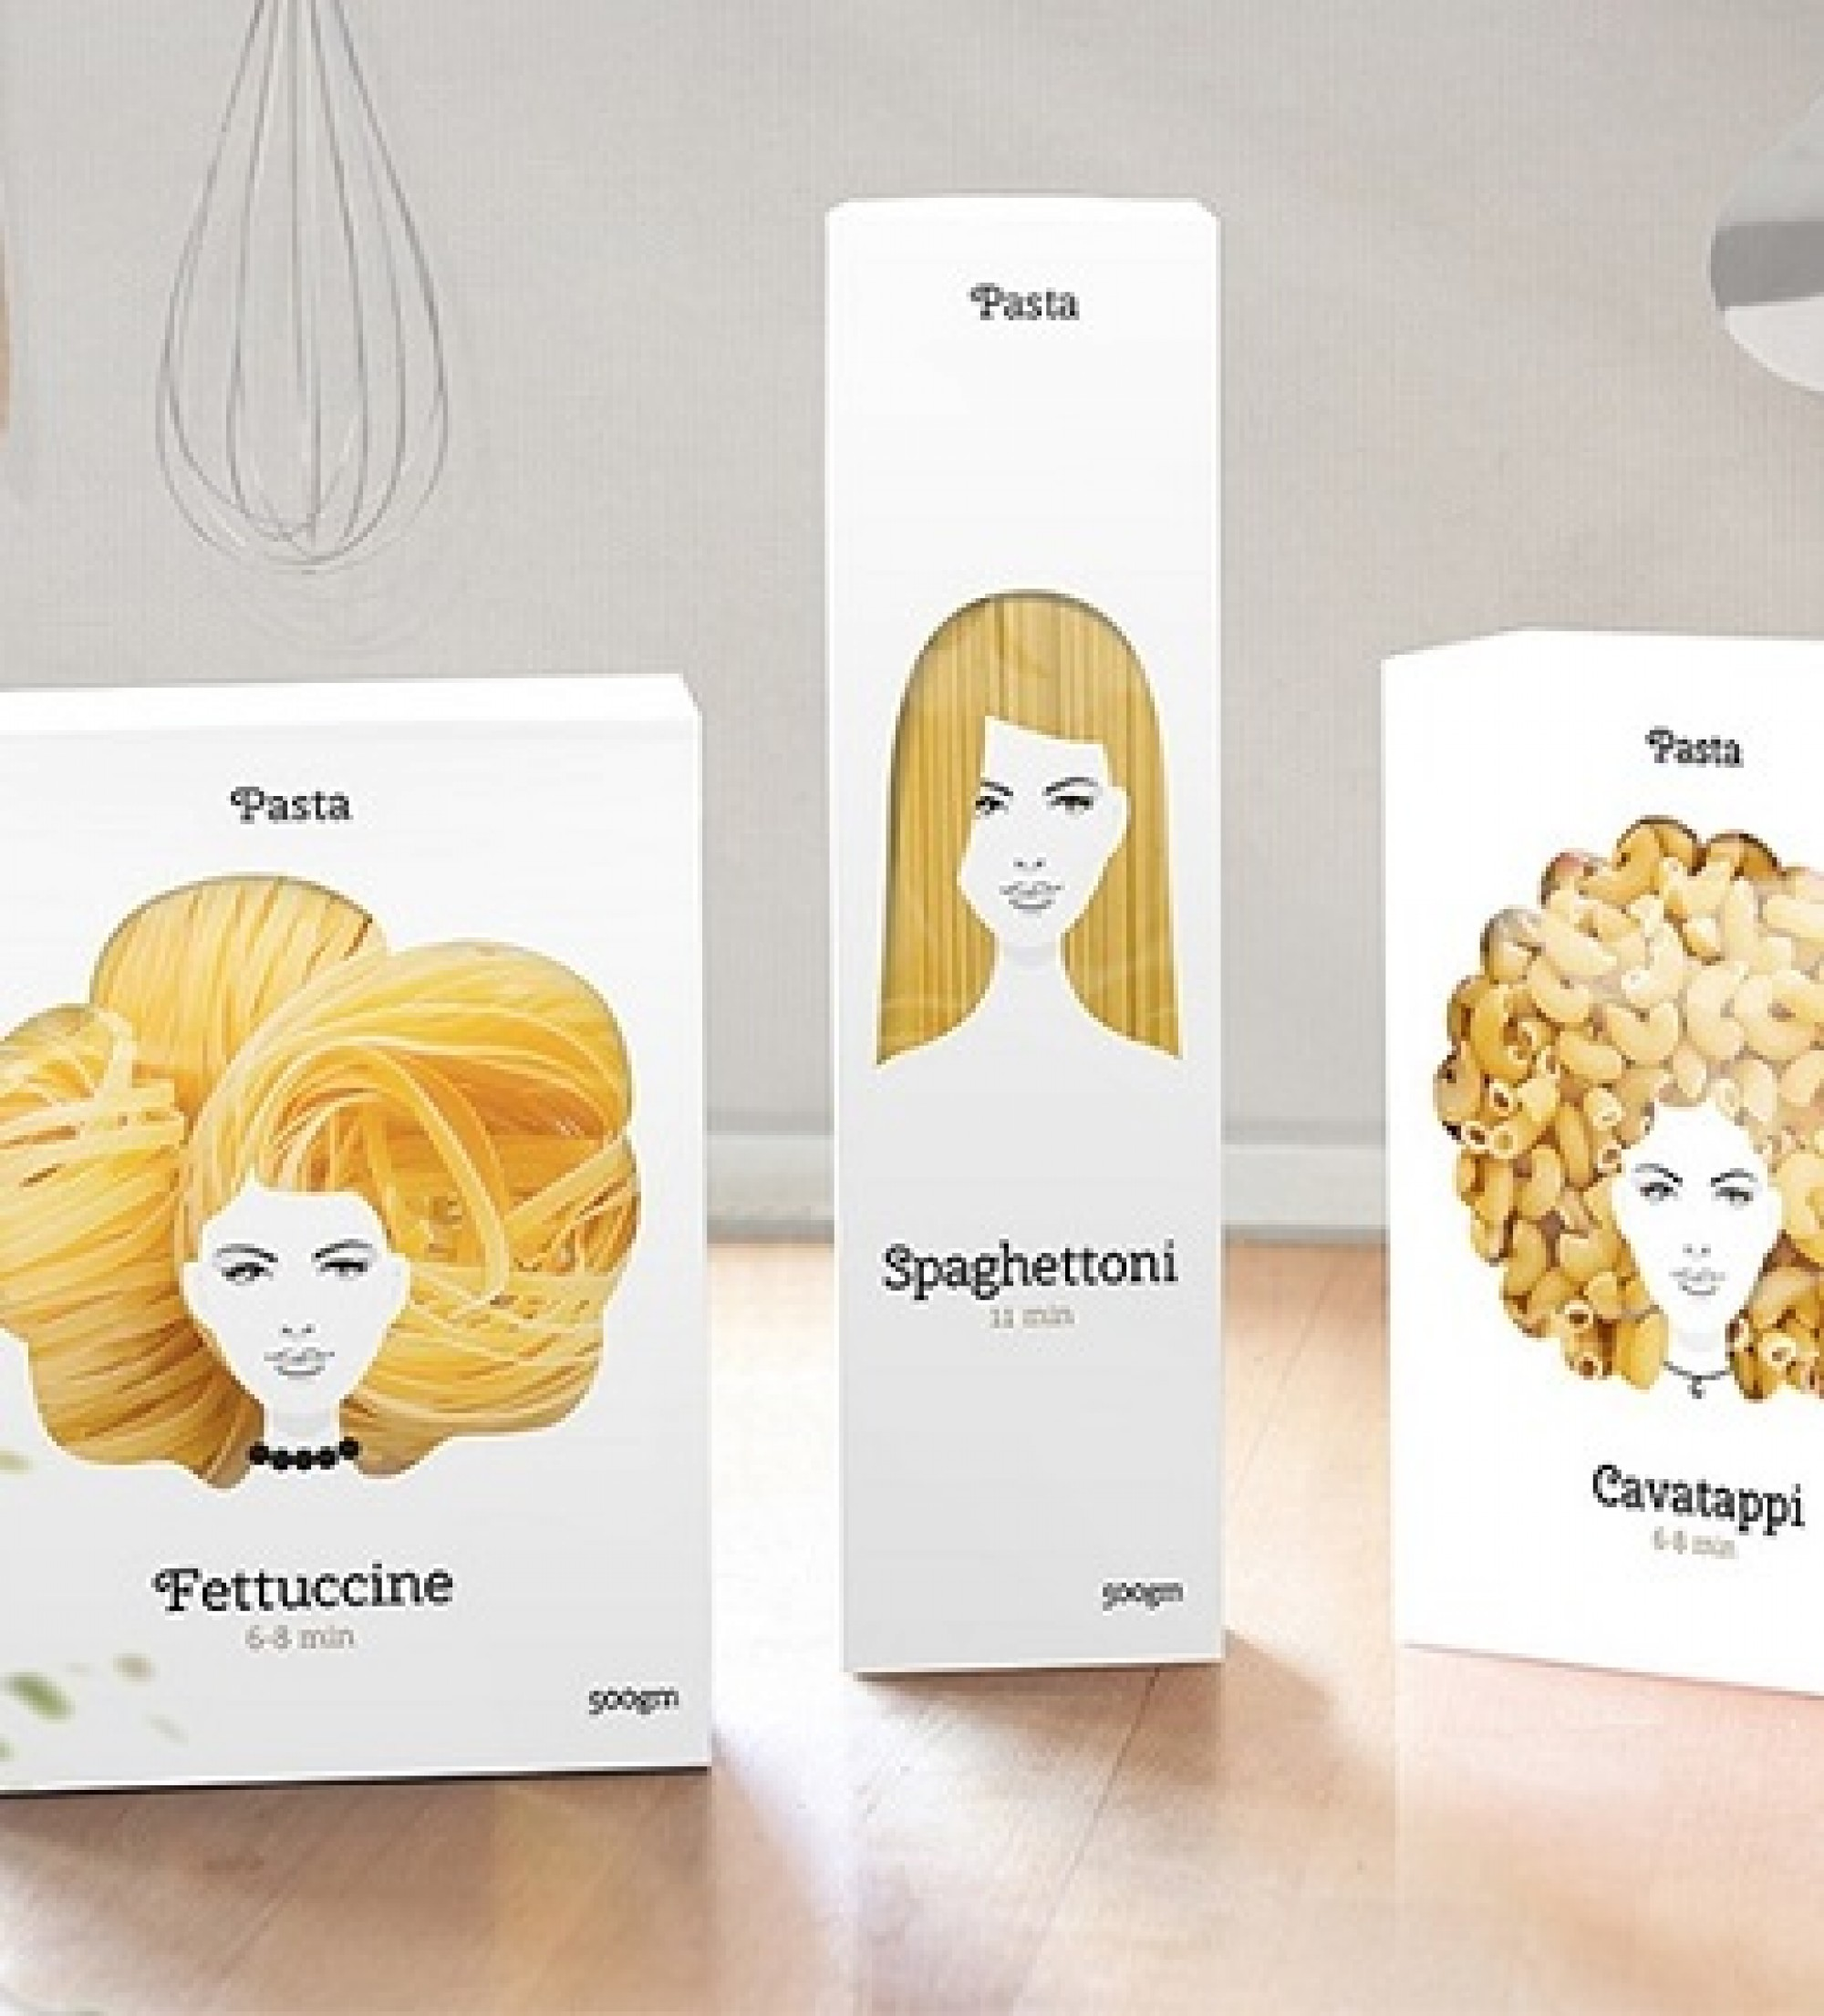 Le nuove sfide del Packaging